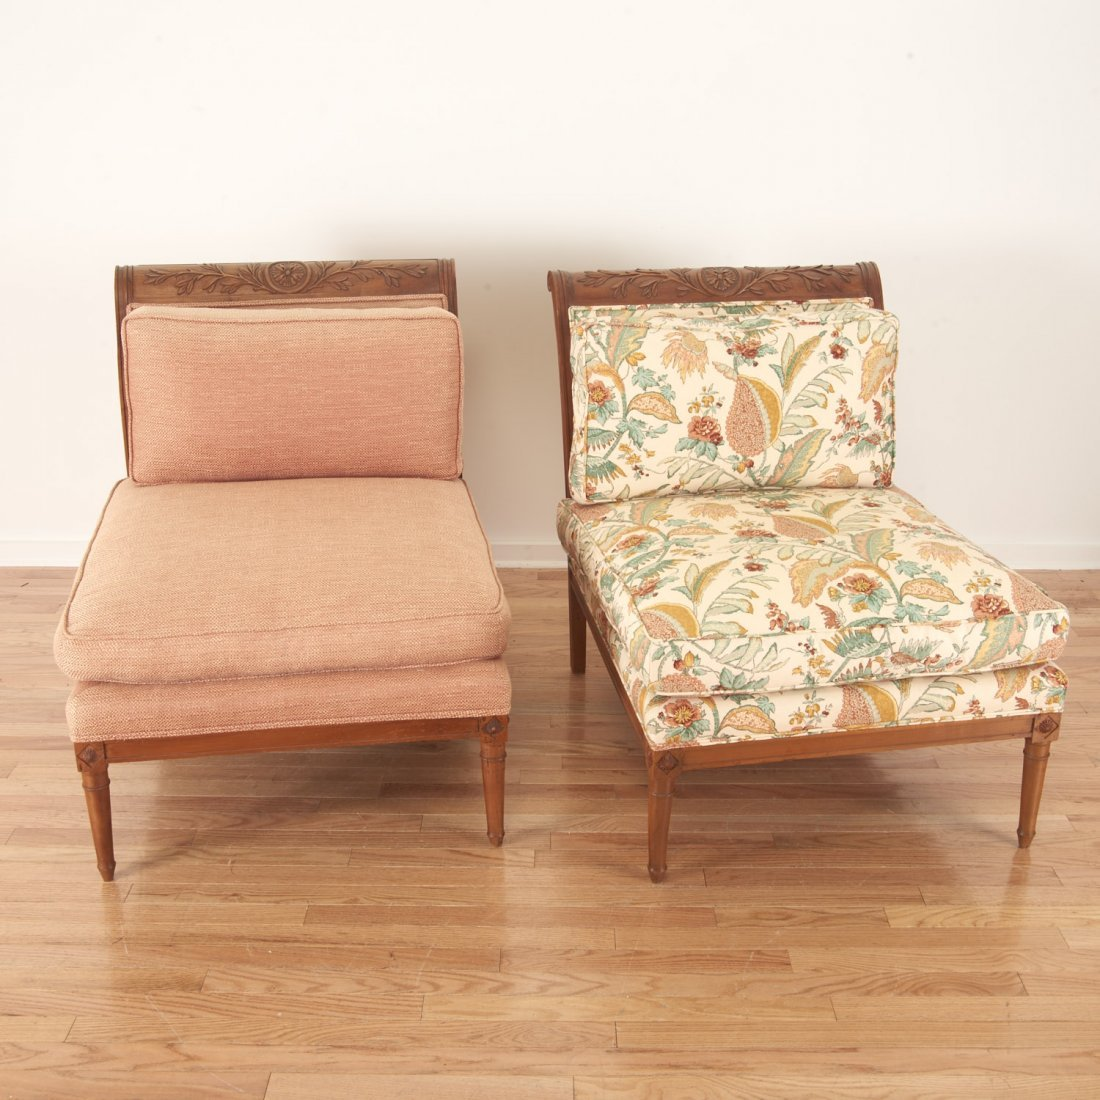 Pair Neo-Directoire upholstered walnut chauffeuse - 2